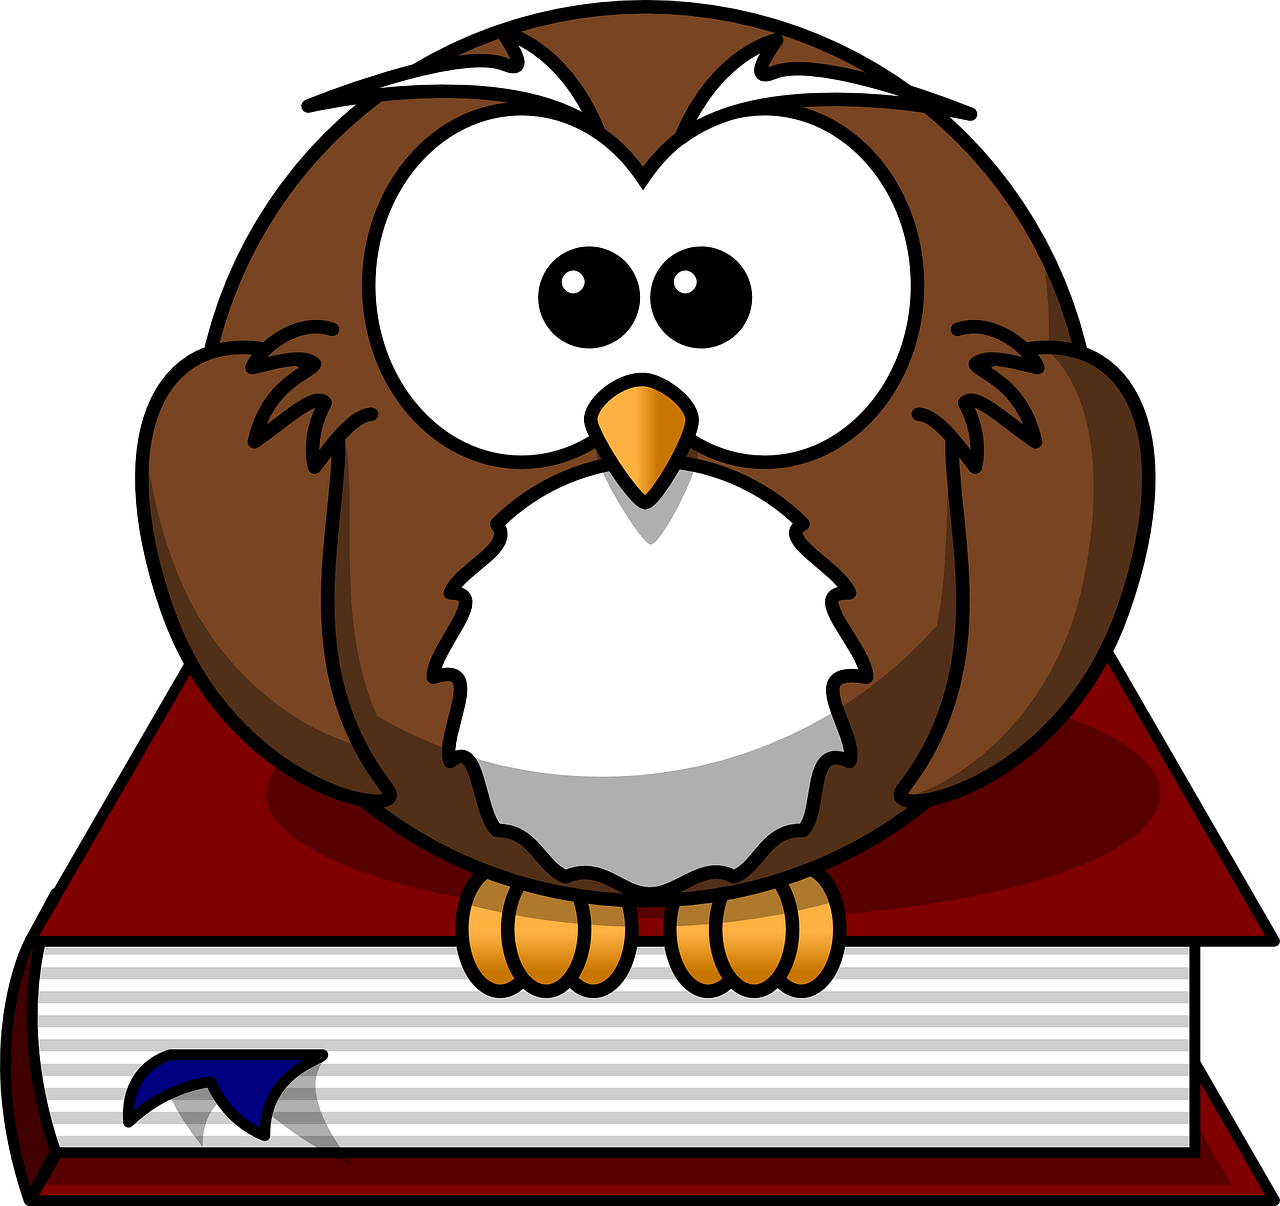 Owl sitting on book